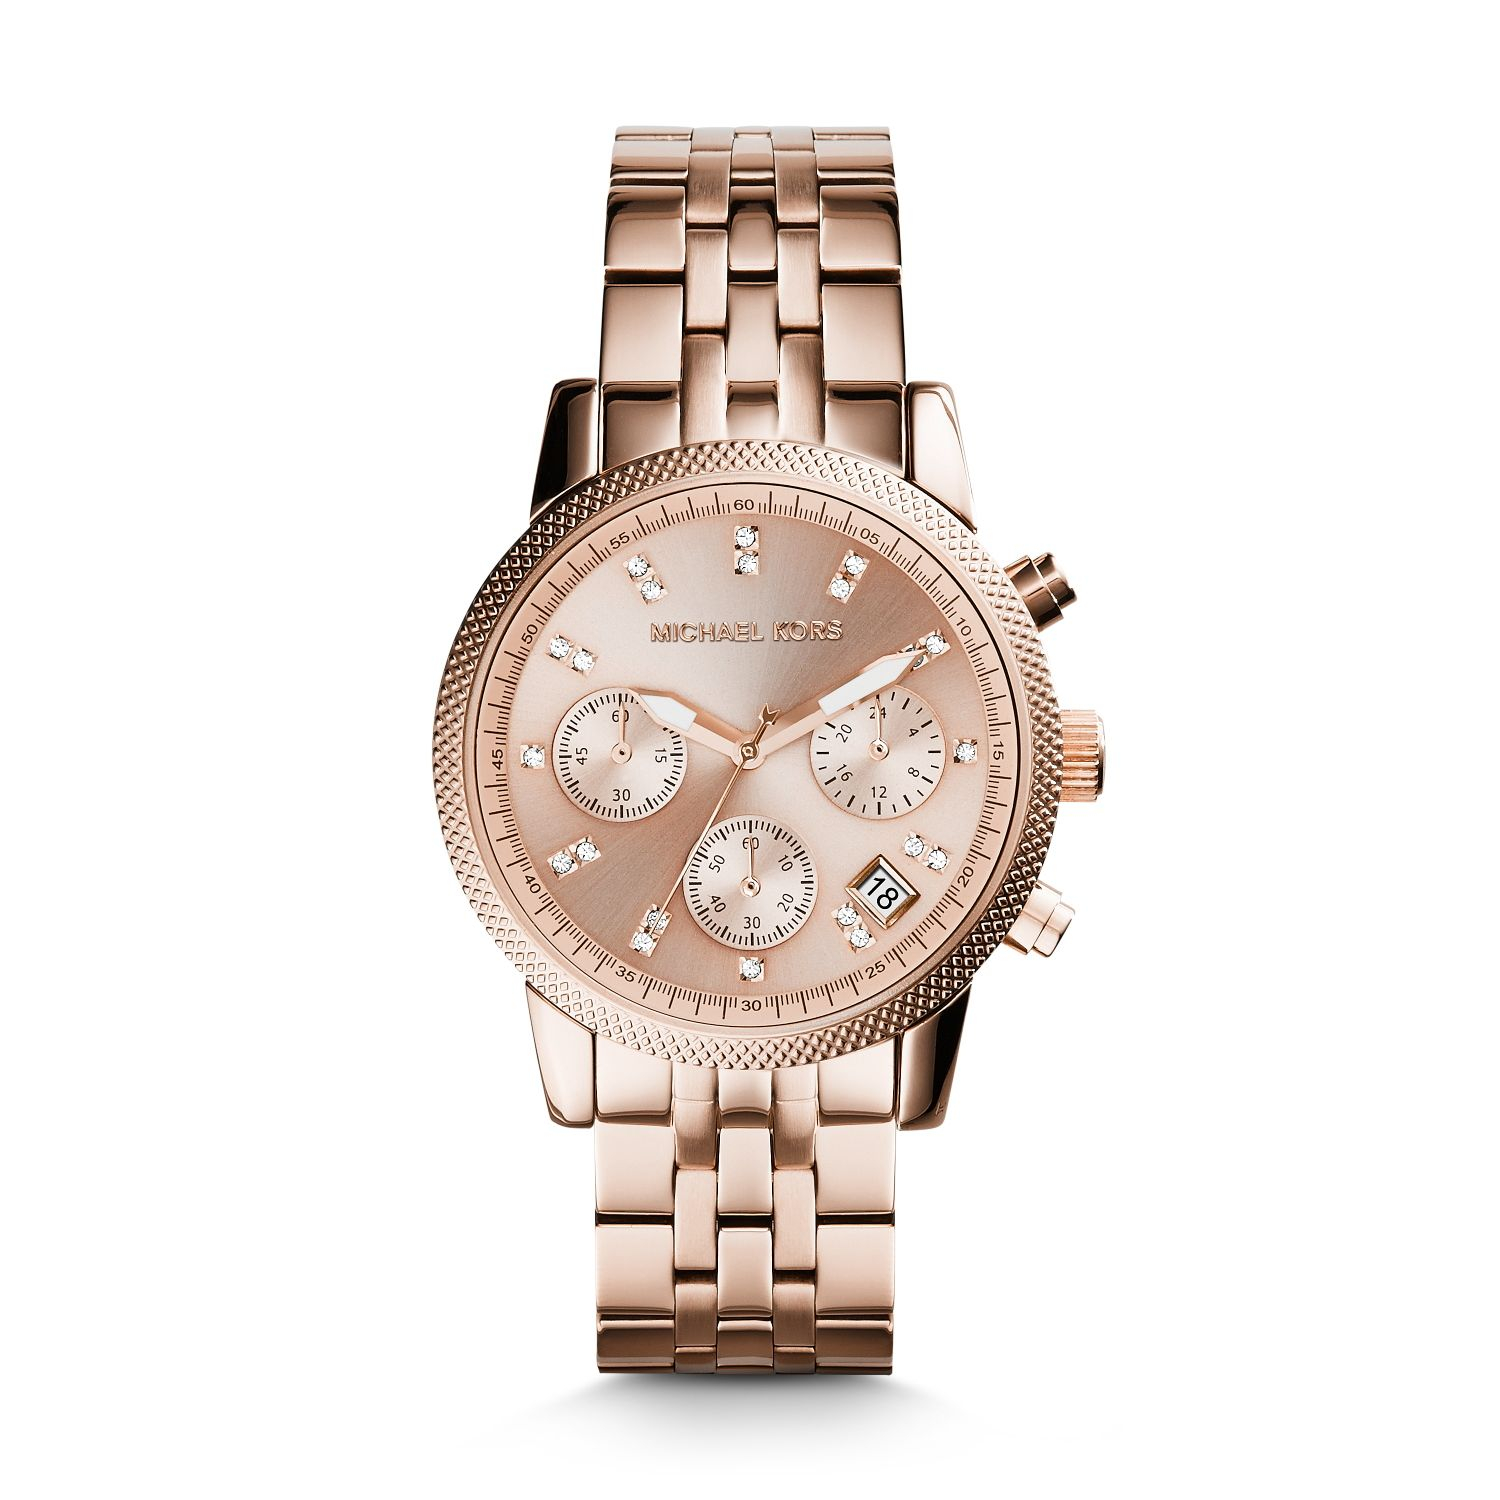 049b5f3cb Michael Kors Ritz Rose Gold-tone Watch in Pink - Lyst